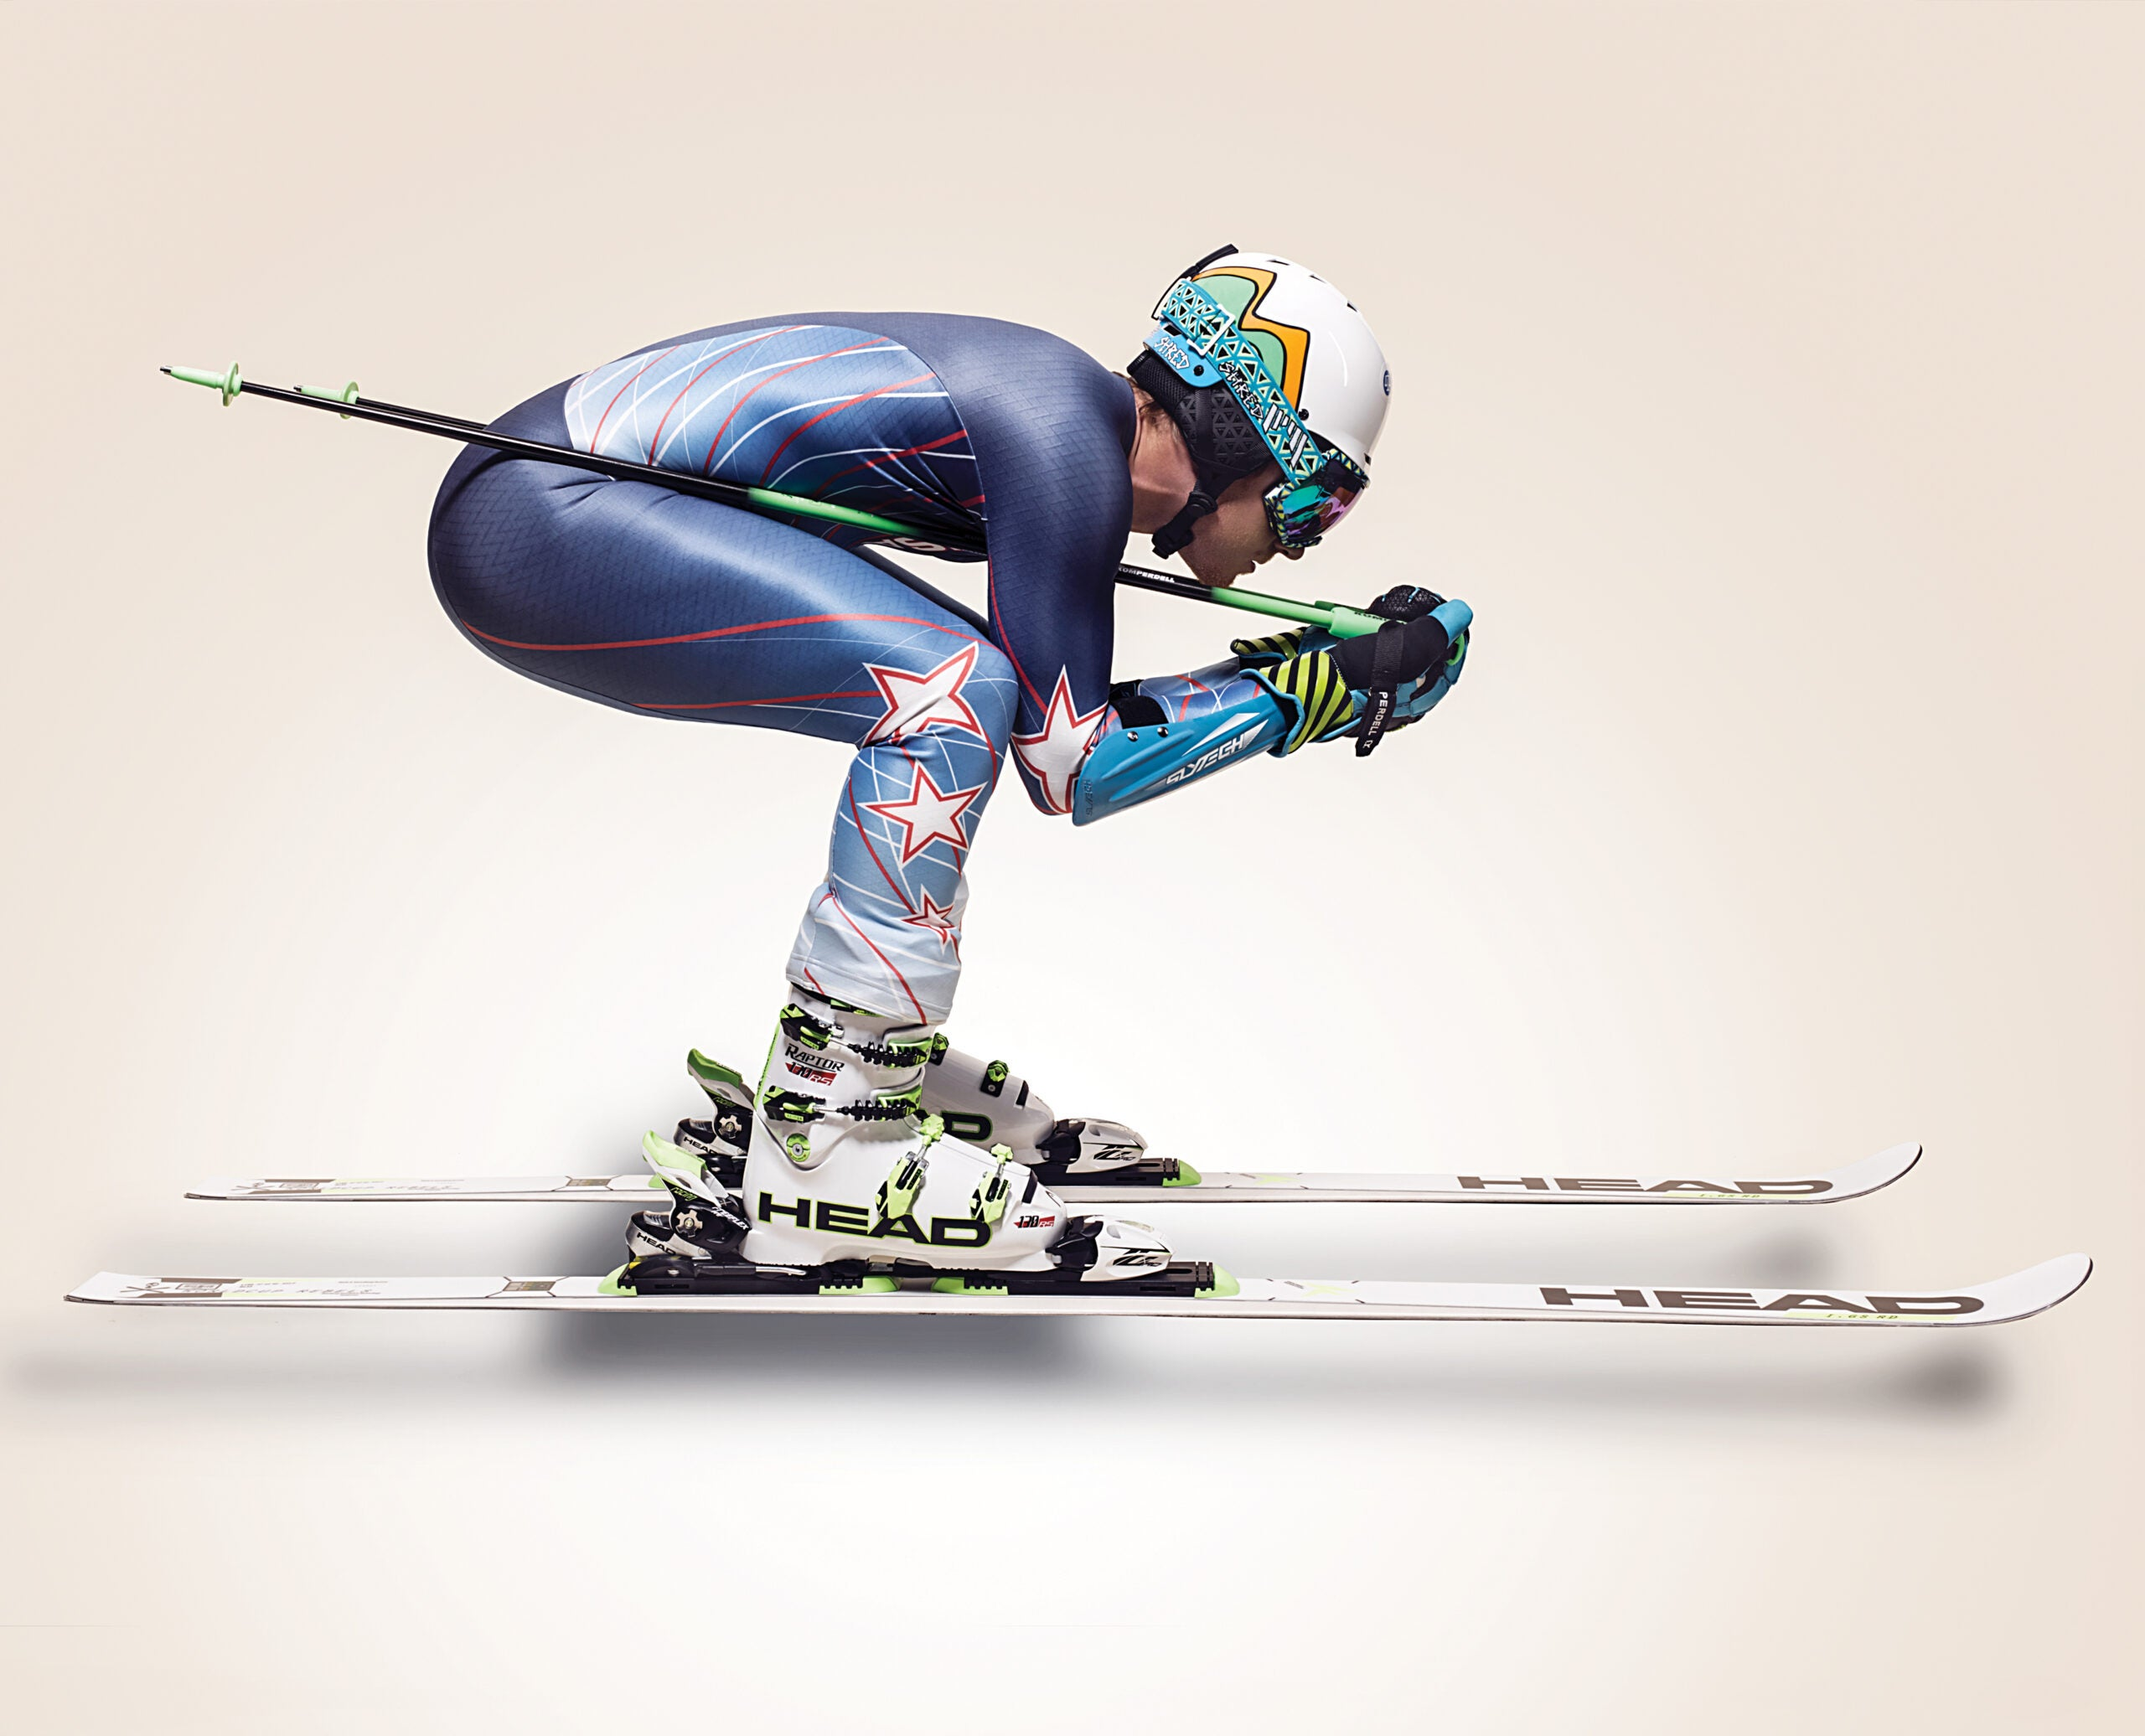 Engineering The Ideal Olympian: Superfast Fitted Ski Suit